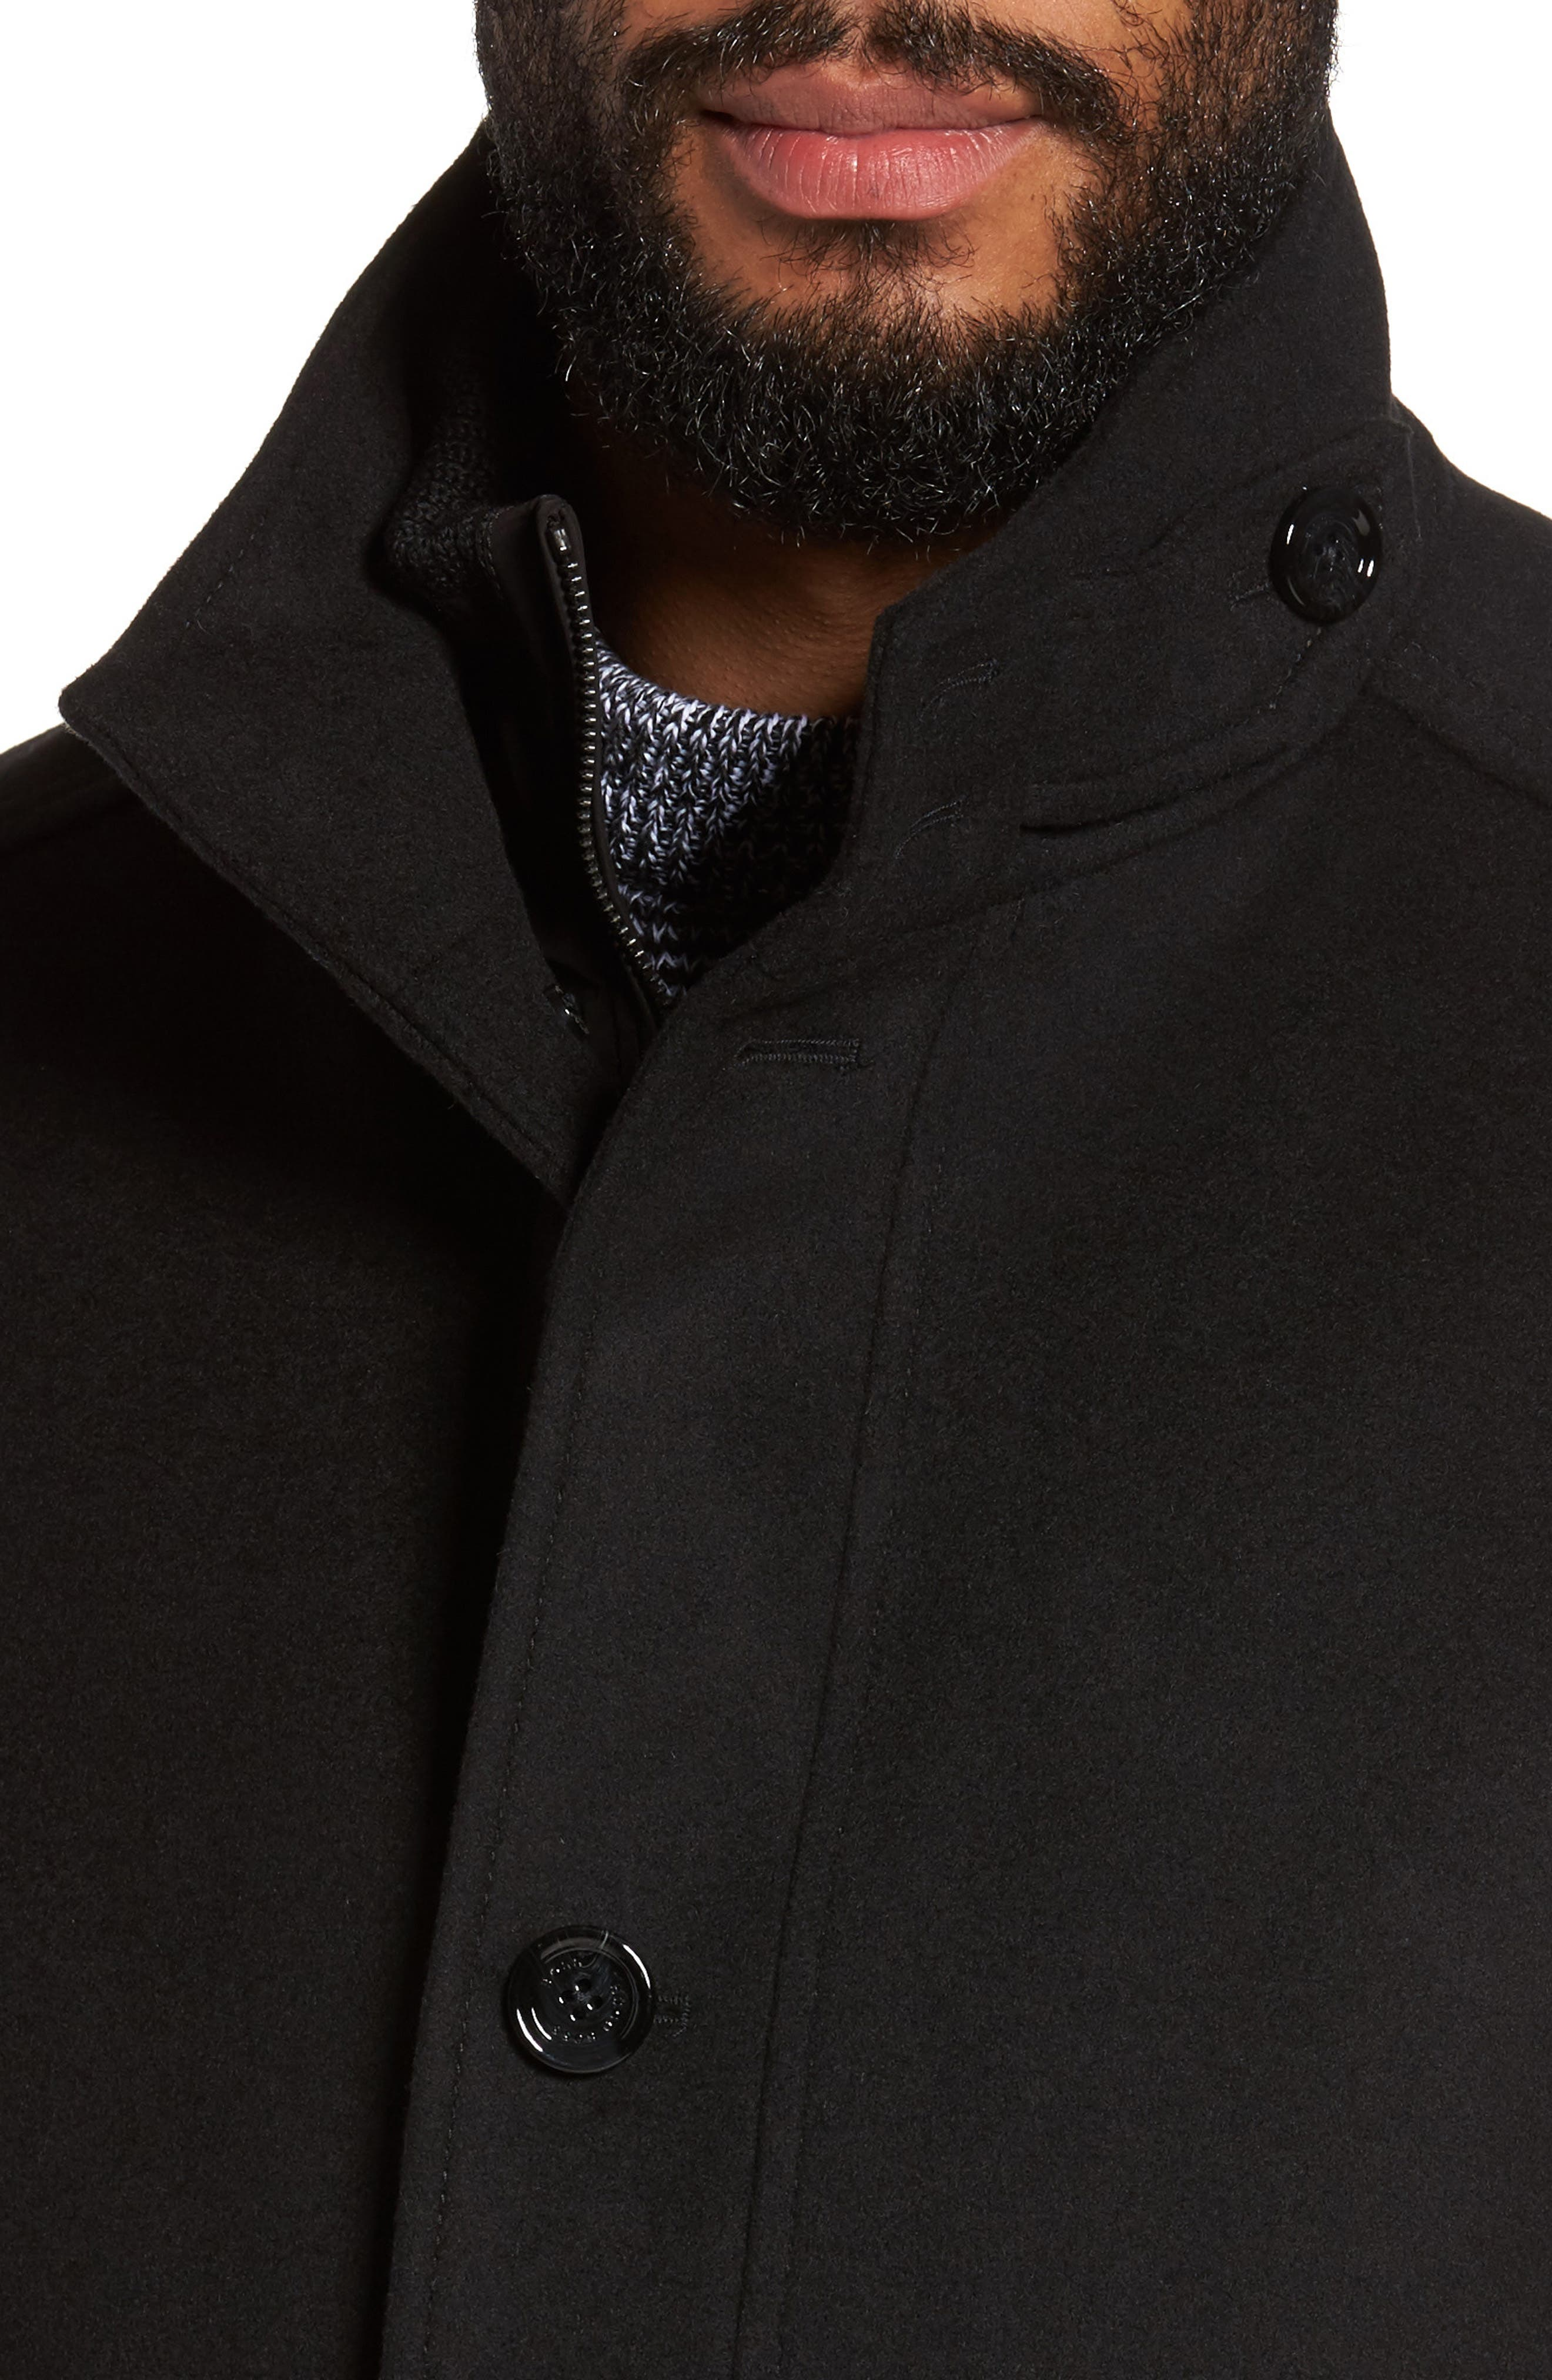 BOSS C-Coxtan Wool Blend Coat with Insert,                             Alternate thumbnail 7, color,